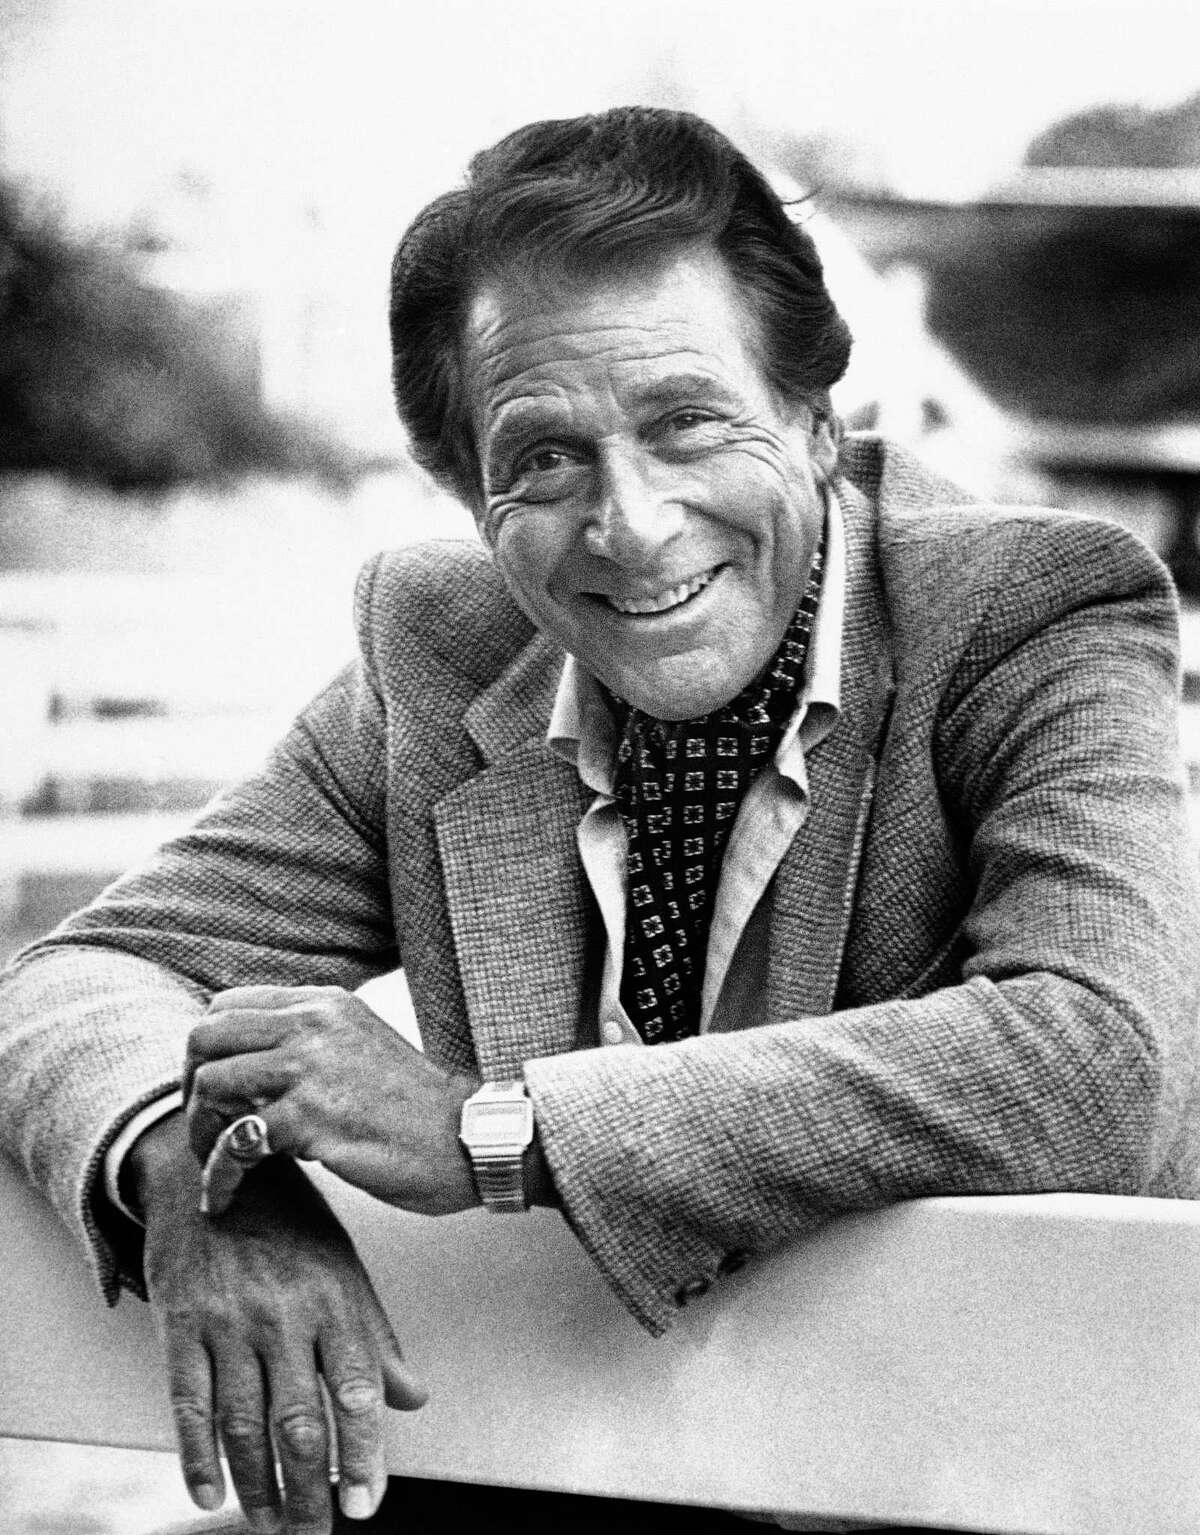 """FILE - Veteran actor Efrem Zimbalist, Jr., known for his starring roles in ì77 Sunset Stripî and ìThe FBI,î stands outside his home, in this Feb. 16, 1982 file photo taken in Los Angeles, Calif. Zimbalist, the son of famous musicians who gained television stardom in the 1950s-60s hit """"77 Sunset Strip"""" and later """"The FBI,"""" died Friday at his ranch in Solvang, Calif., at age 95. (AP Photo/Wally Fong, File)"""